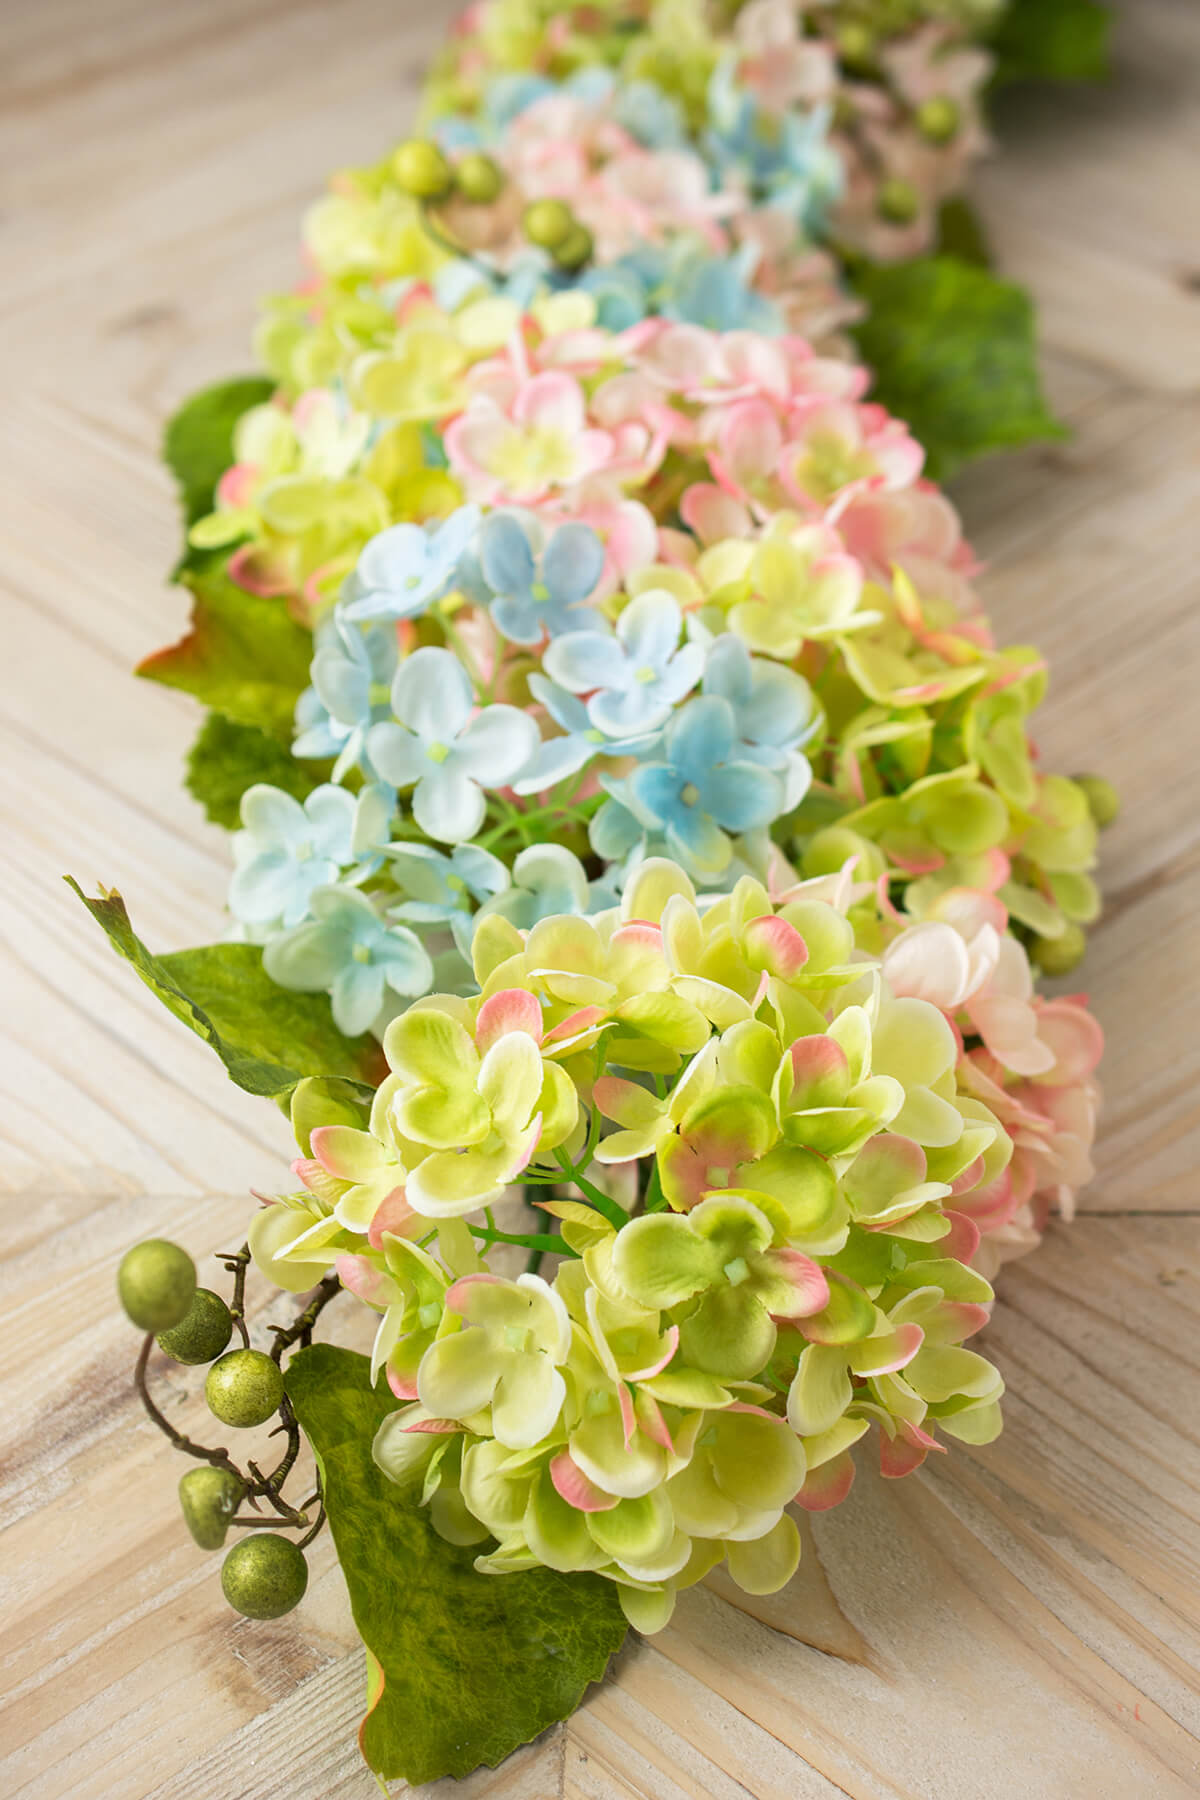 Silk flowers sprays leis bouquets saveoncrafts garland hydrangea 4ft mixed pastels dhlflorist Choice Image